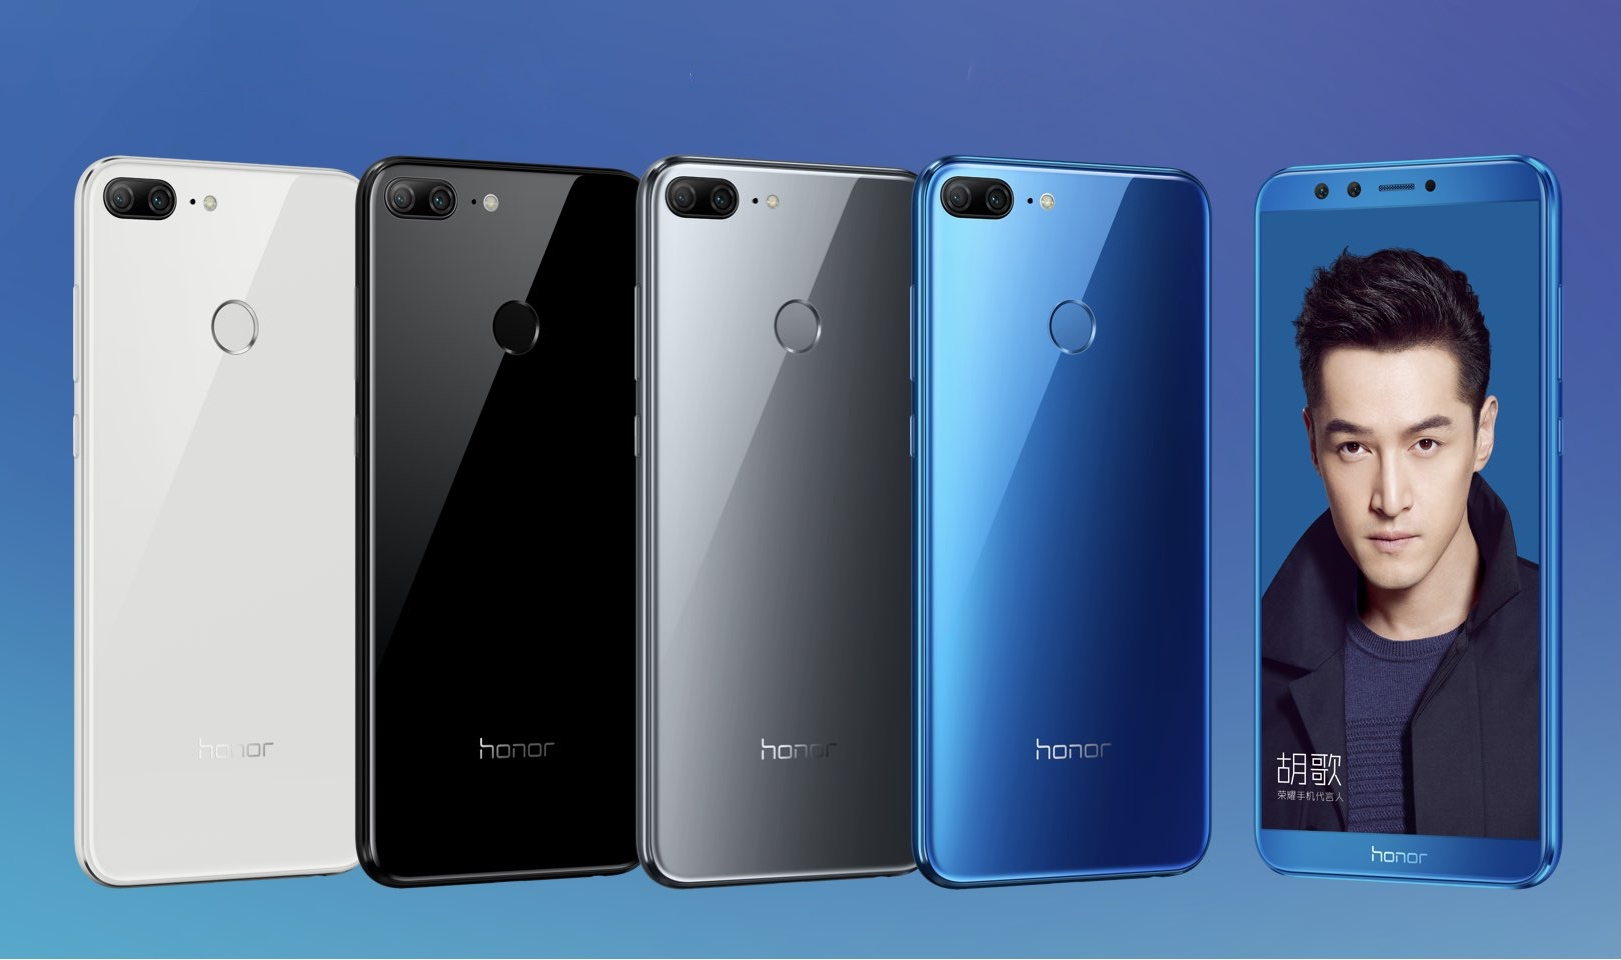 Huawei Honor 9 Lite review